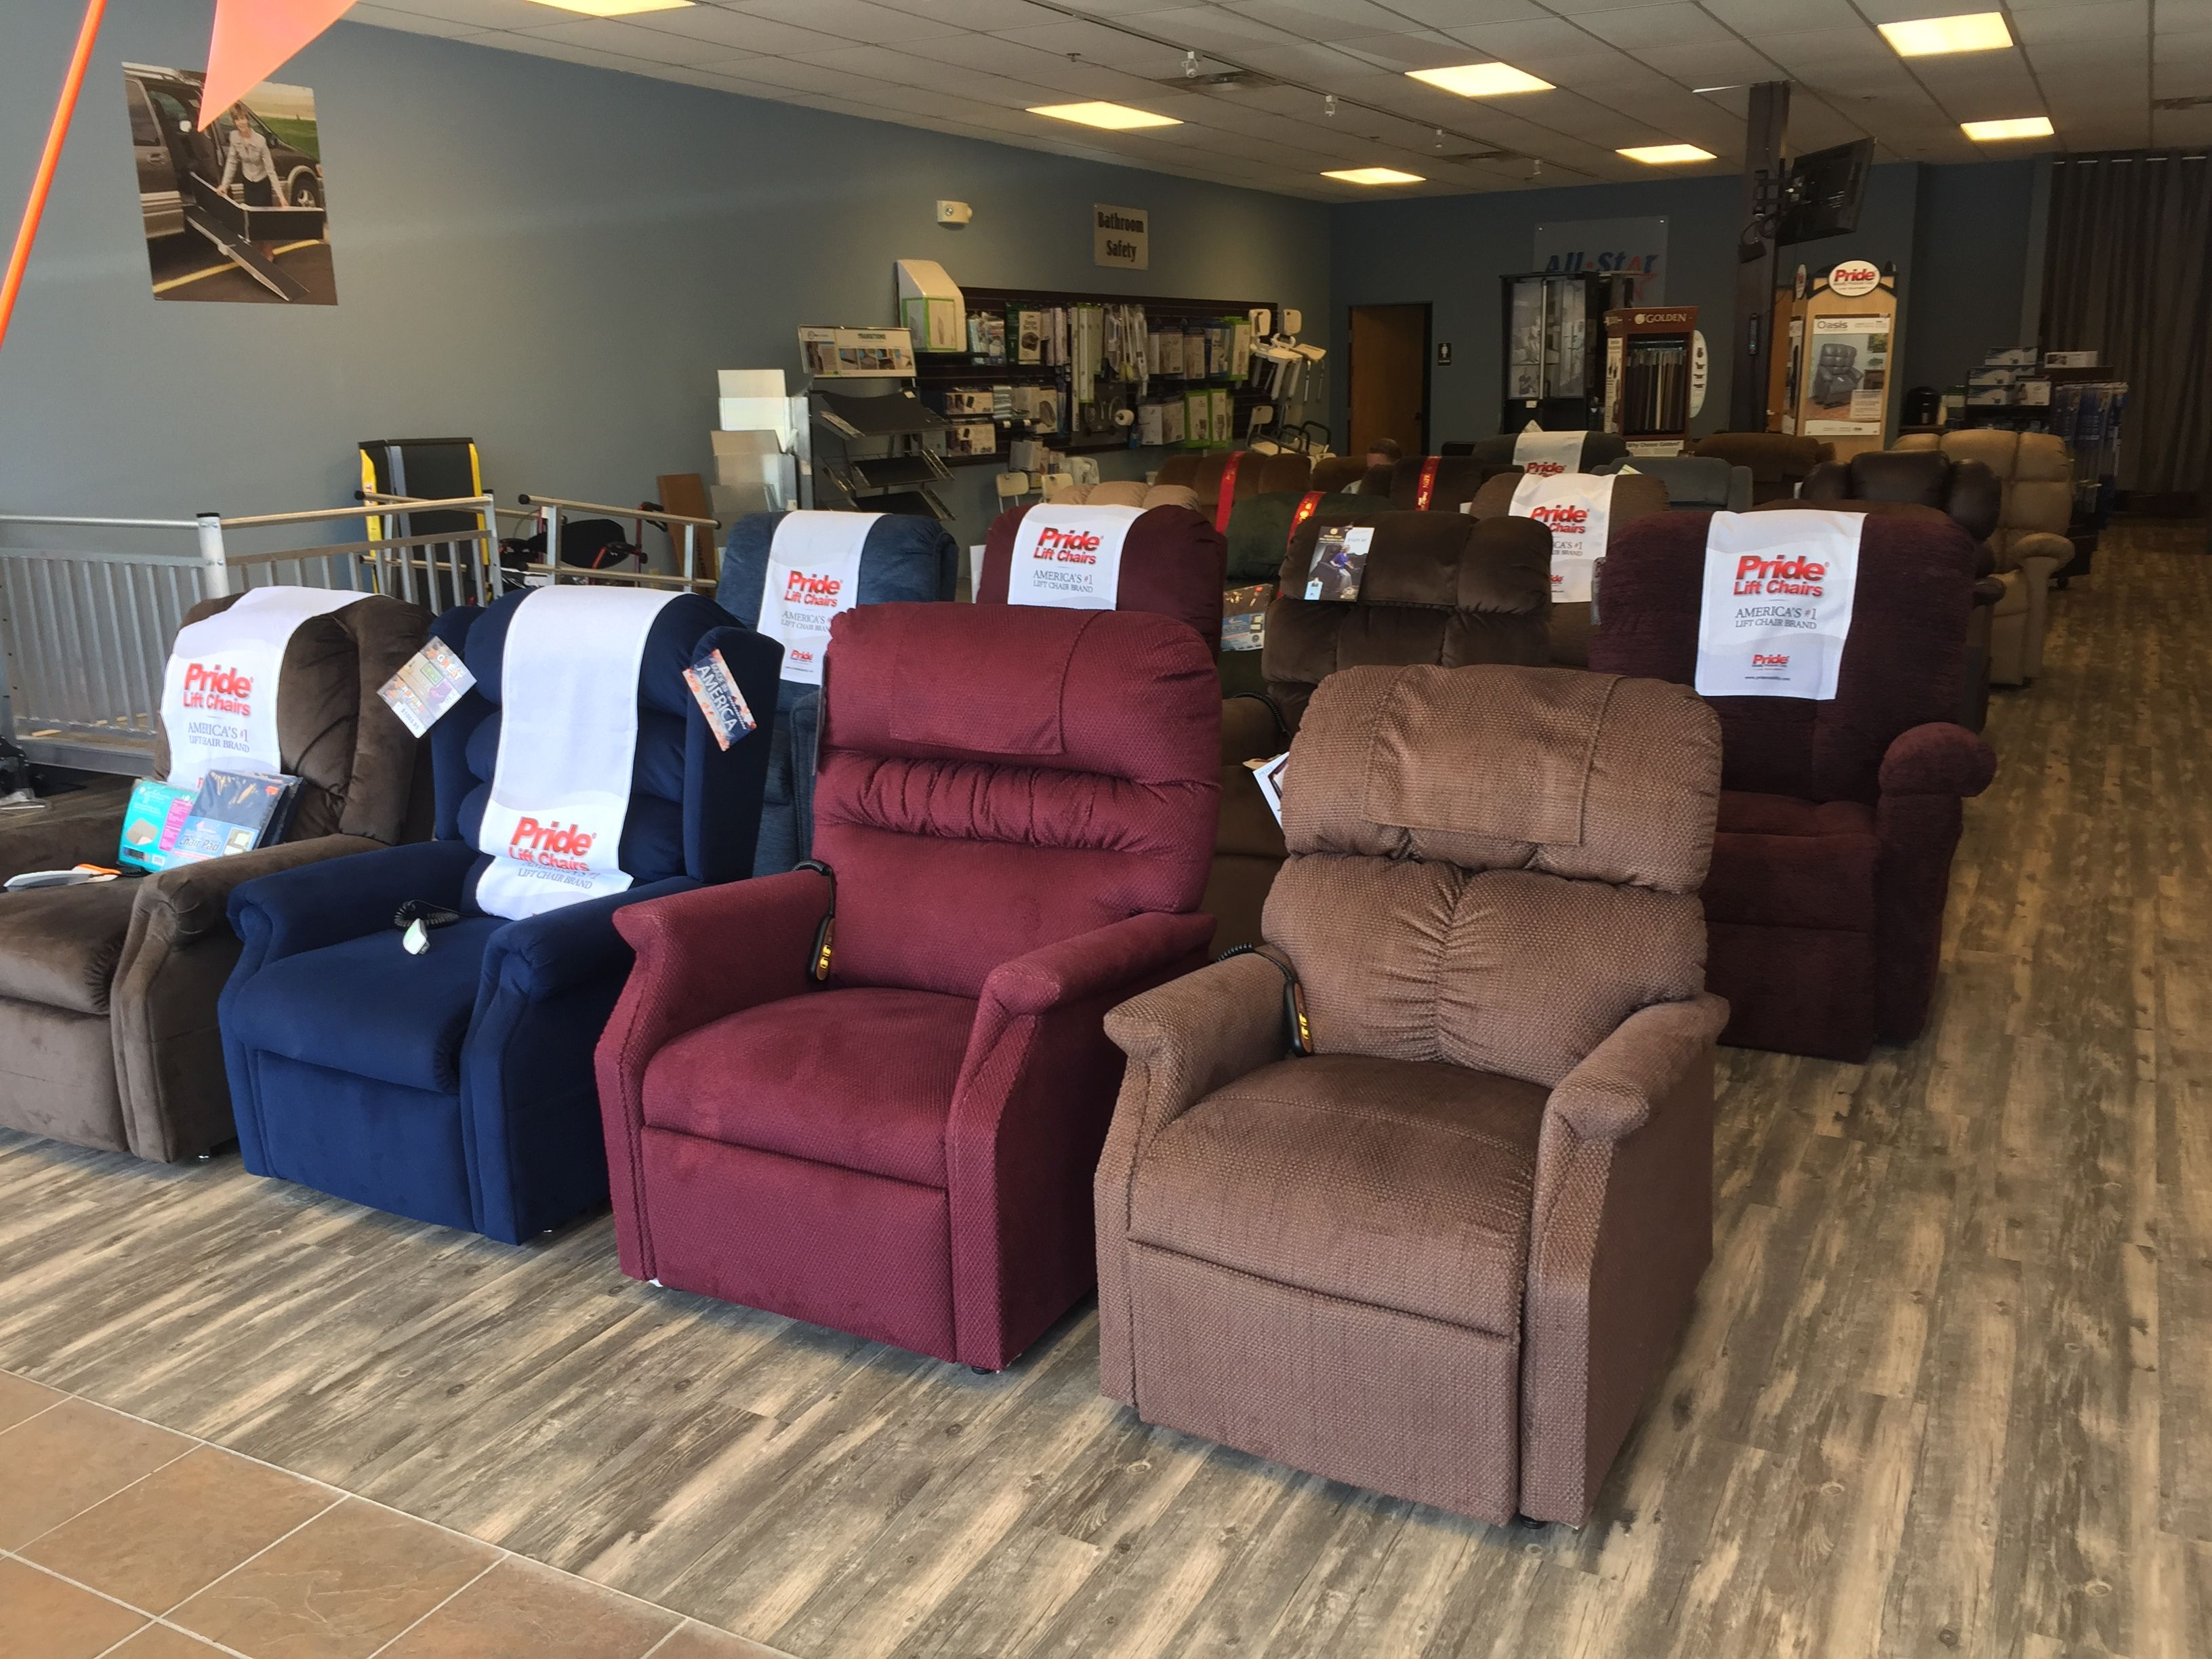 Our Great Lift Chair Selection In Our Franklin Tn Showroom Over 20 Chairs In Stock Goldentechnologies Pridemobili Lift Chairs Chair Chair Showroom